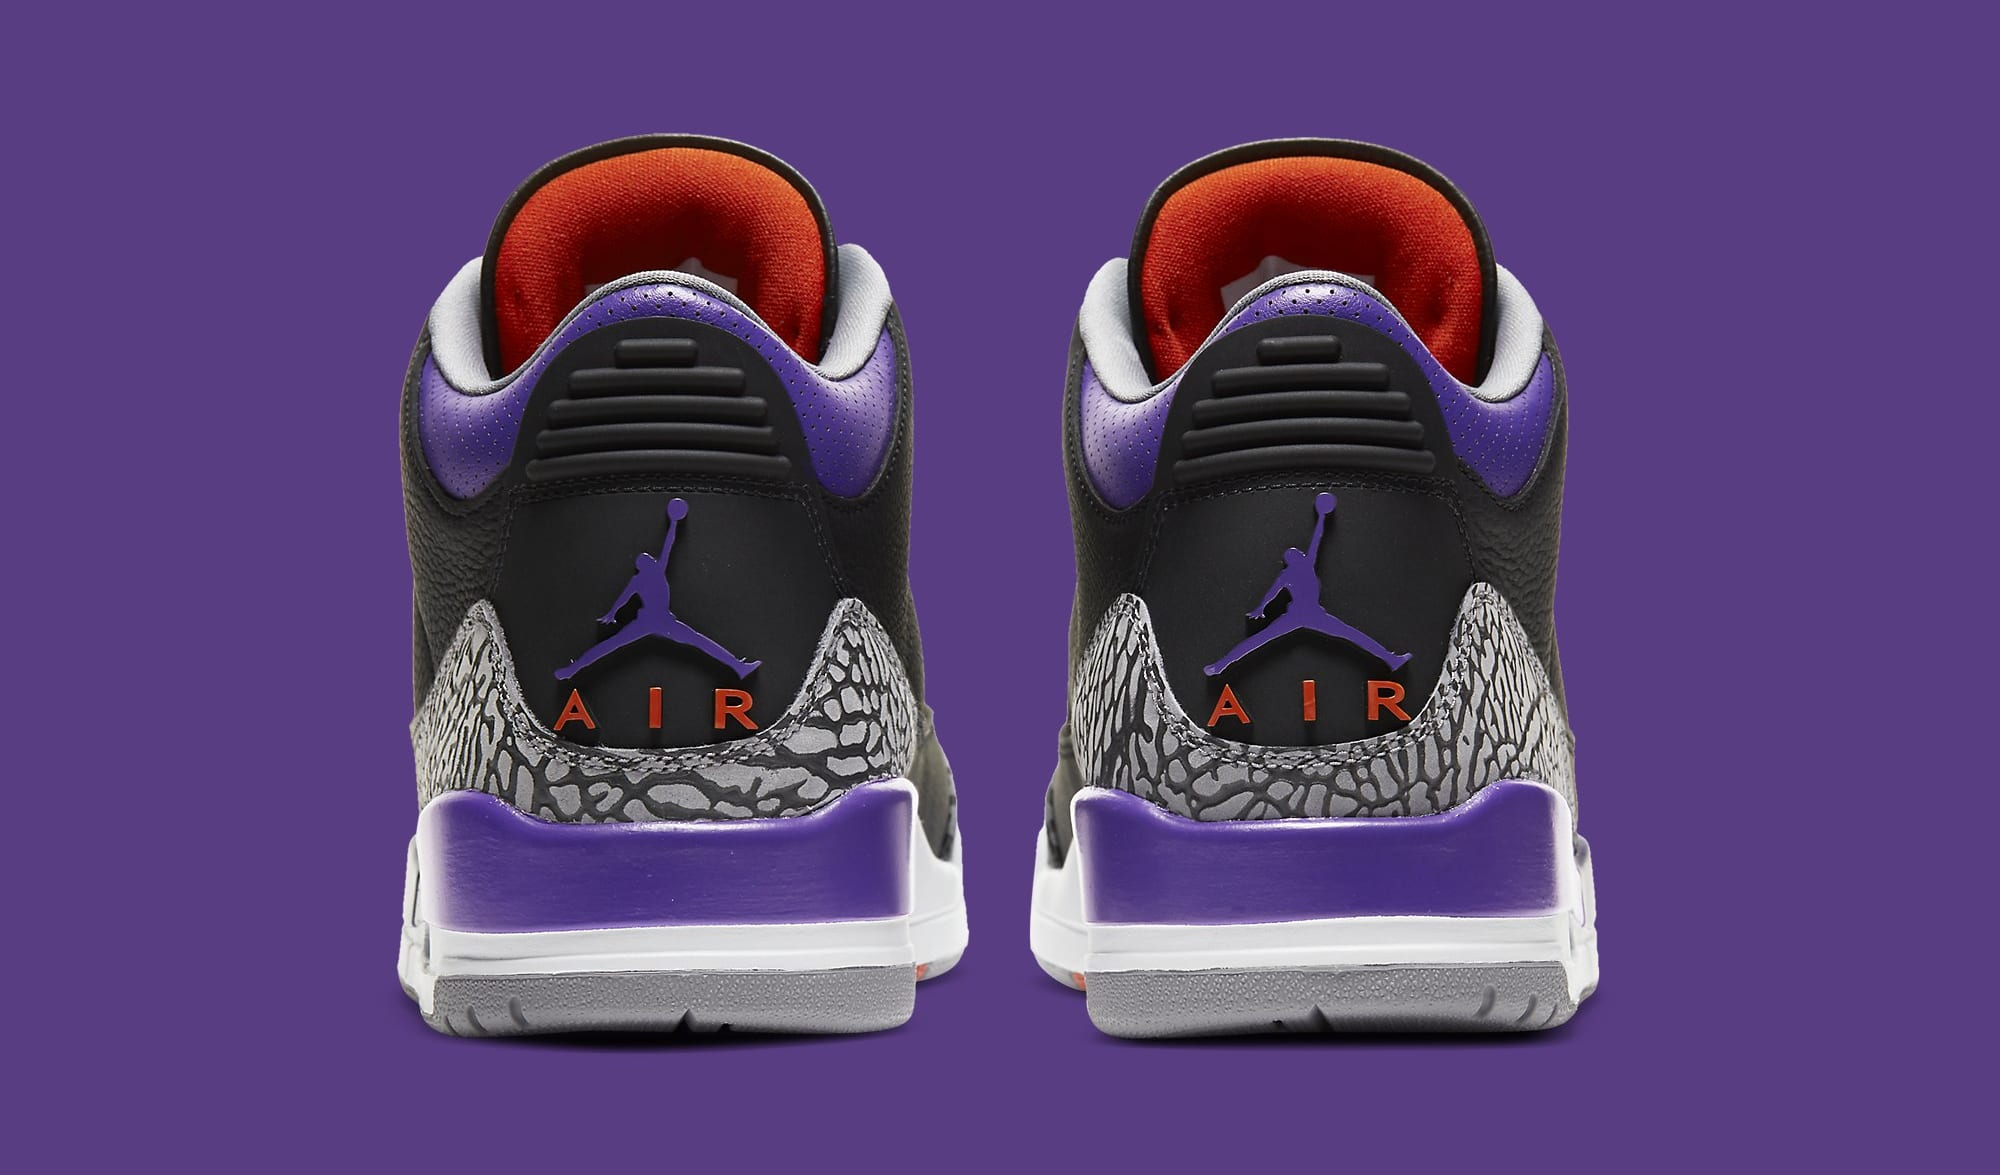 Air Jordan 3 Retro 'Court Purple' CT8532-050 Heel